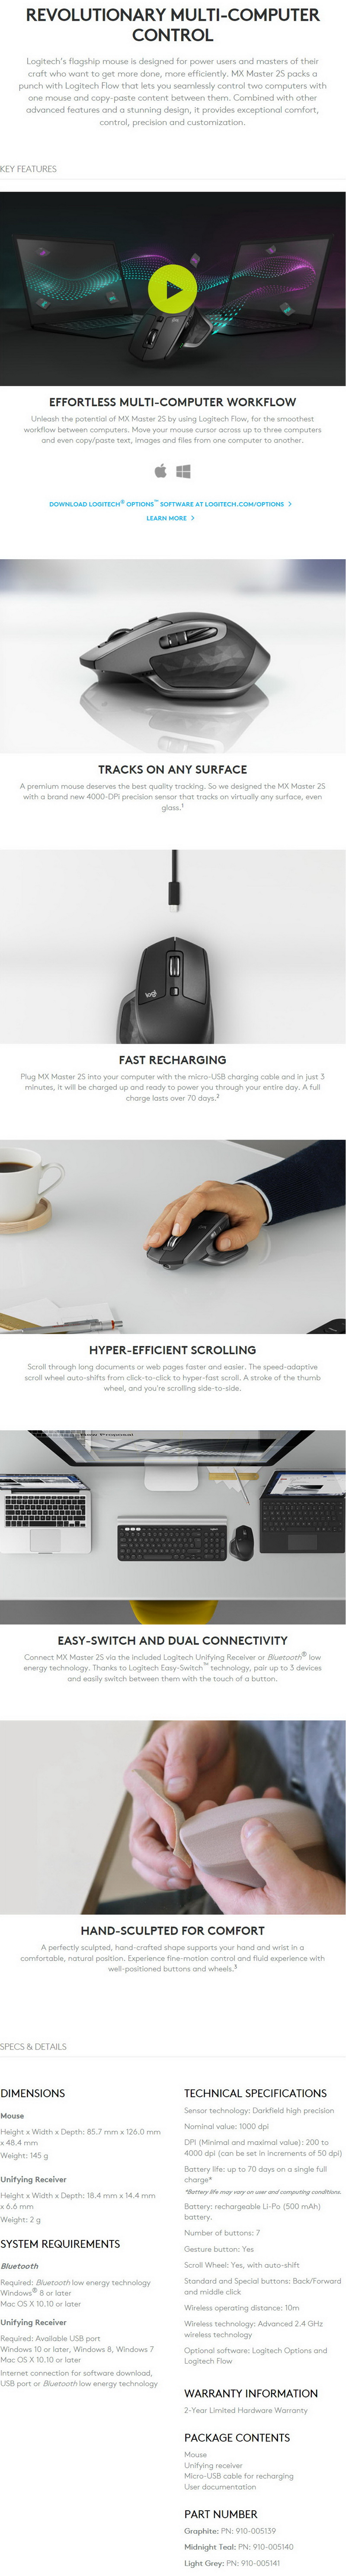 Logitech Options Smooth Scrolling